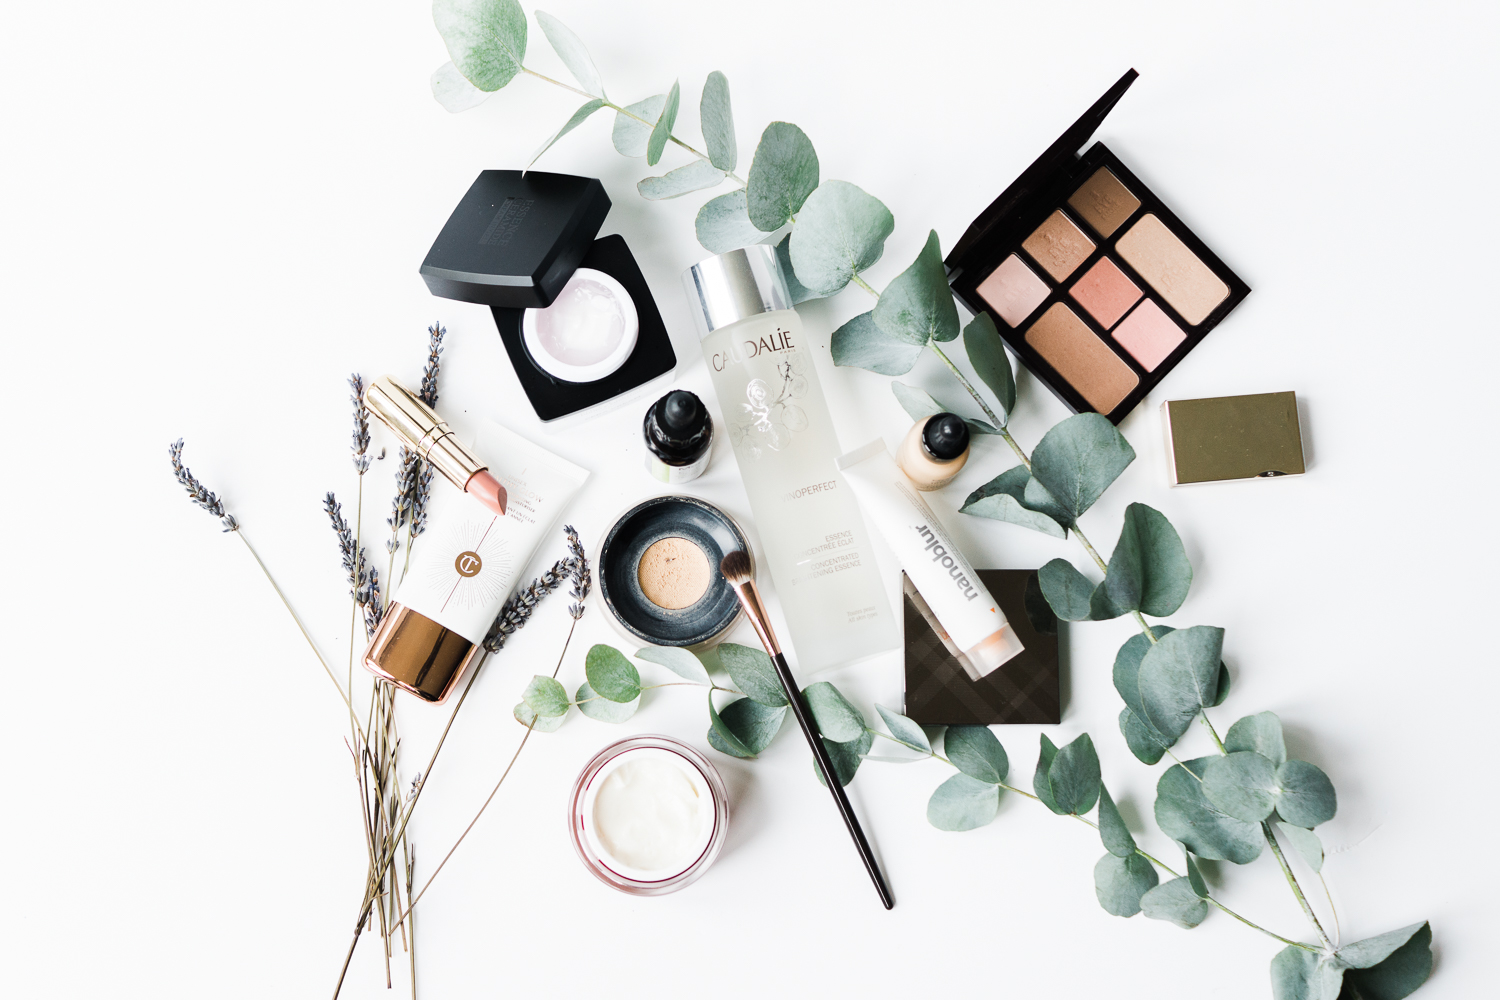 beauty-favourites-makeup-korean-skincare-flatlay-photography-Barely-There-Beauty-blog